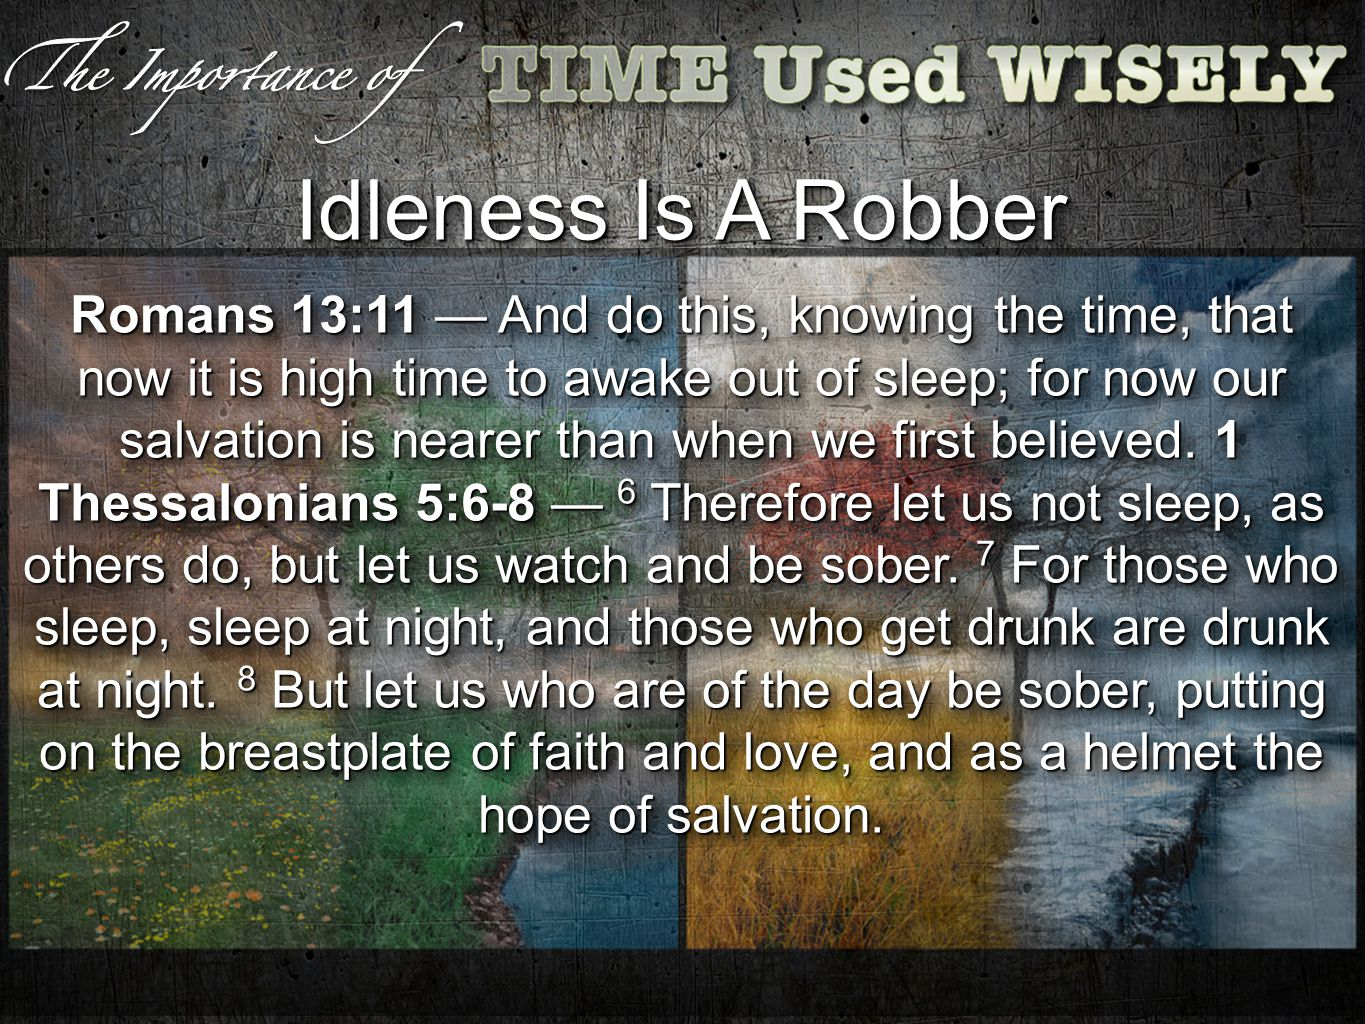 Idleness Is A Robber Romans 13:11 And do this, knowing the time, that now it is high time to awake out of sleep; for now our salvation is nearer than when we first believed.